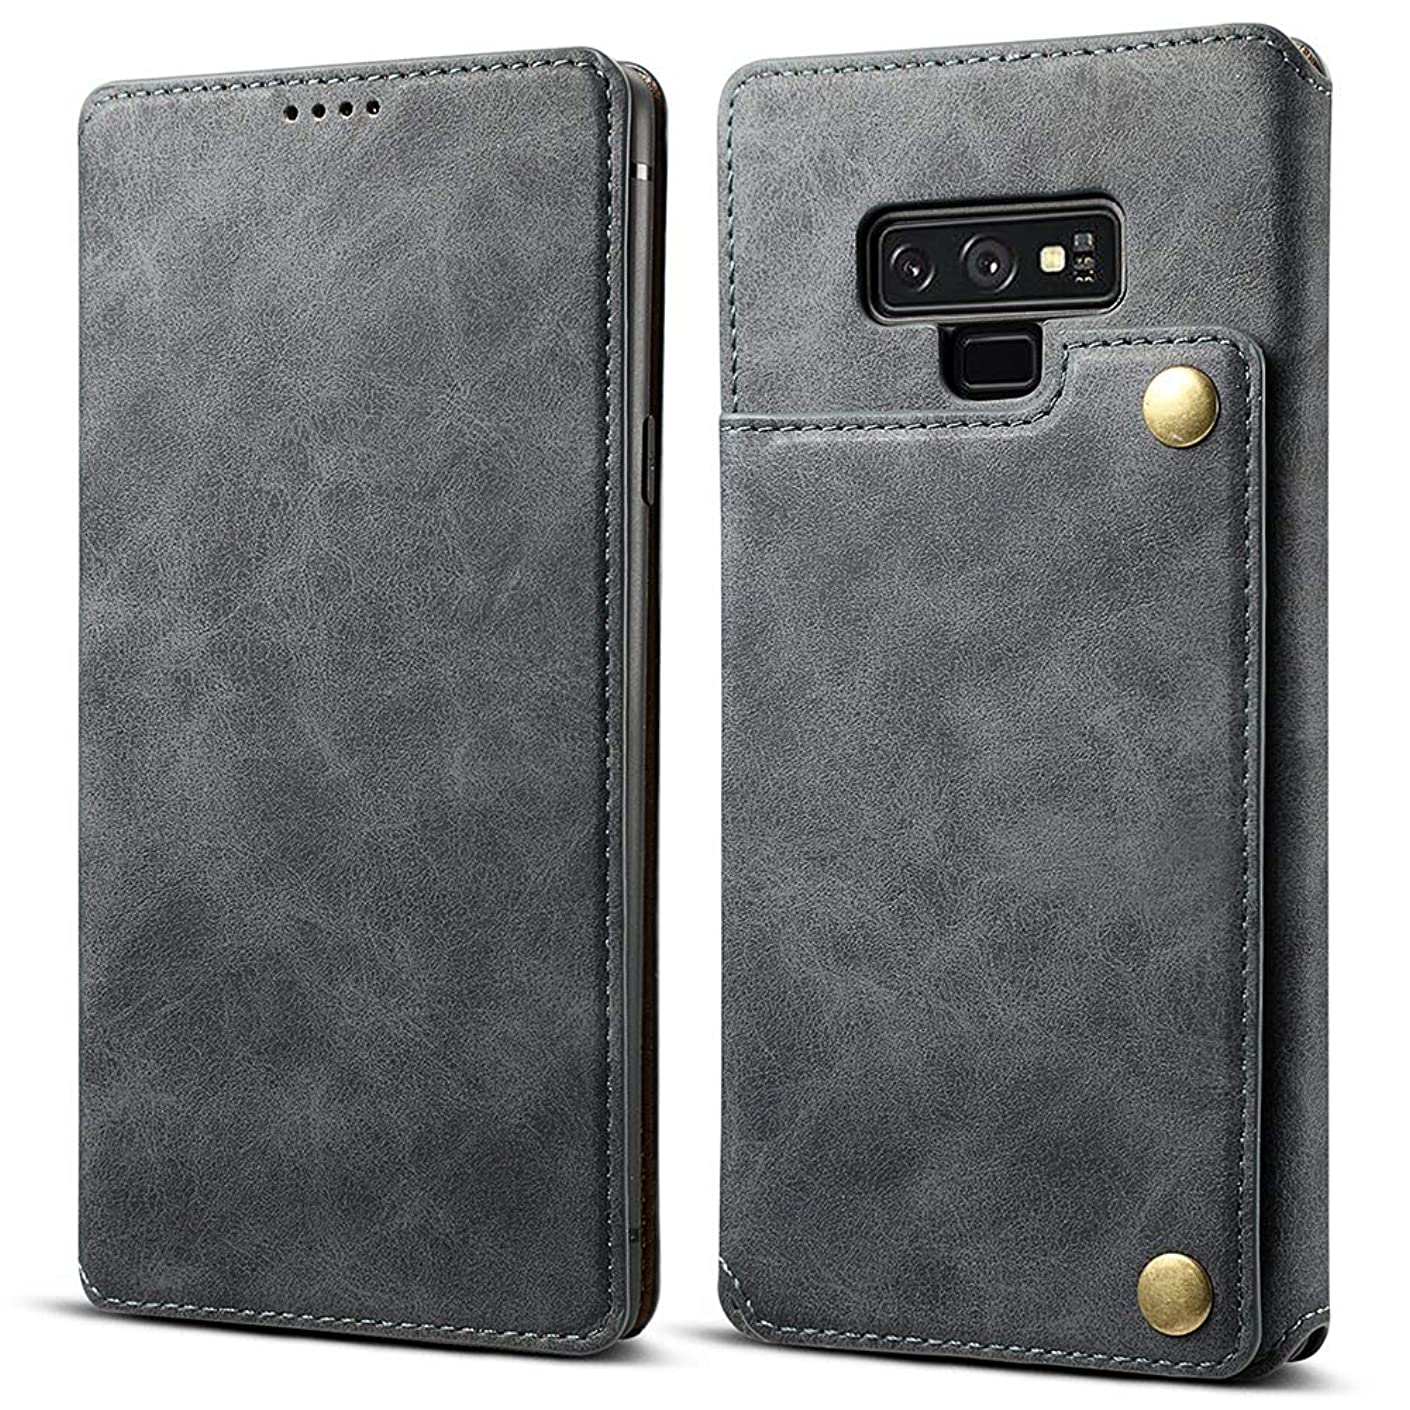 Galaxy Note 9 Wallet Case for Men [Ultra Thin Slim Fit] [Premium Vegan Leather] [Kickstand with Card Holder] Double Magnetic Clasp Flip Protective Cover for Samsung Galaxy Note 9 (Gray)